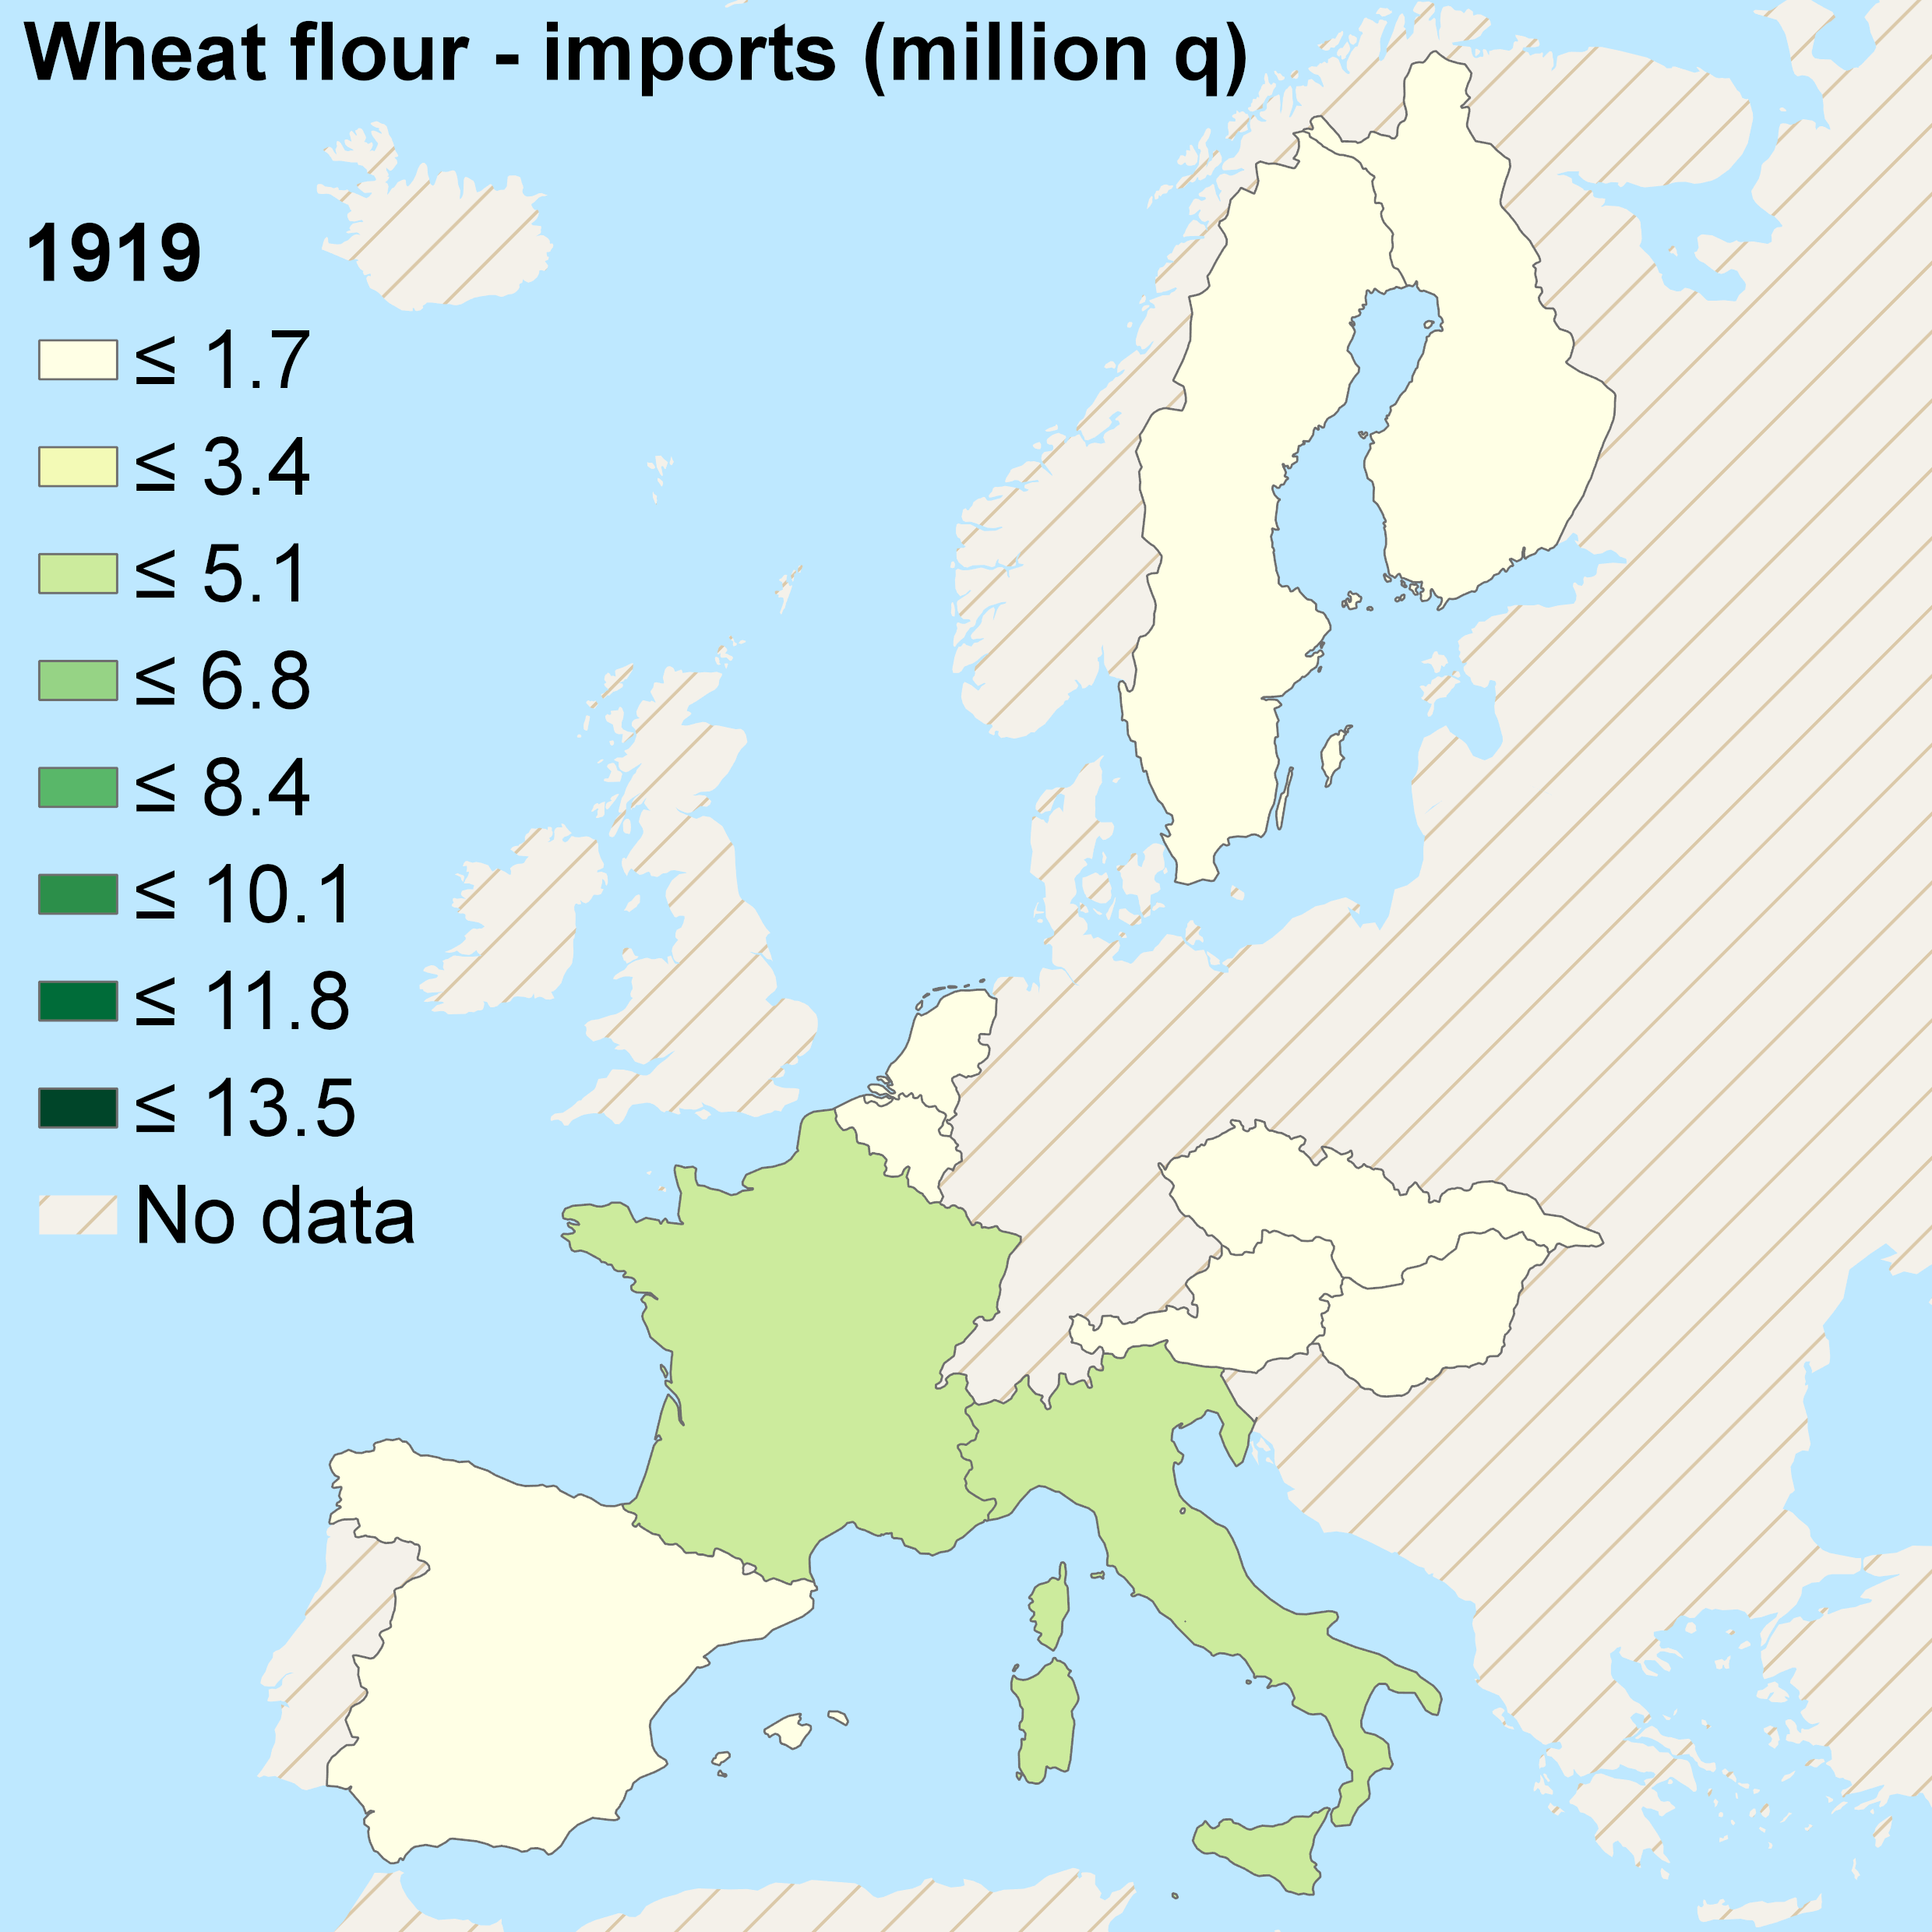 wheat-flour-imports-1919-v2